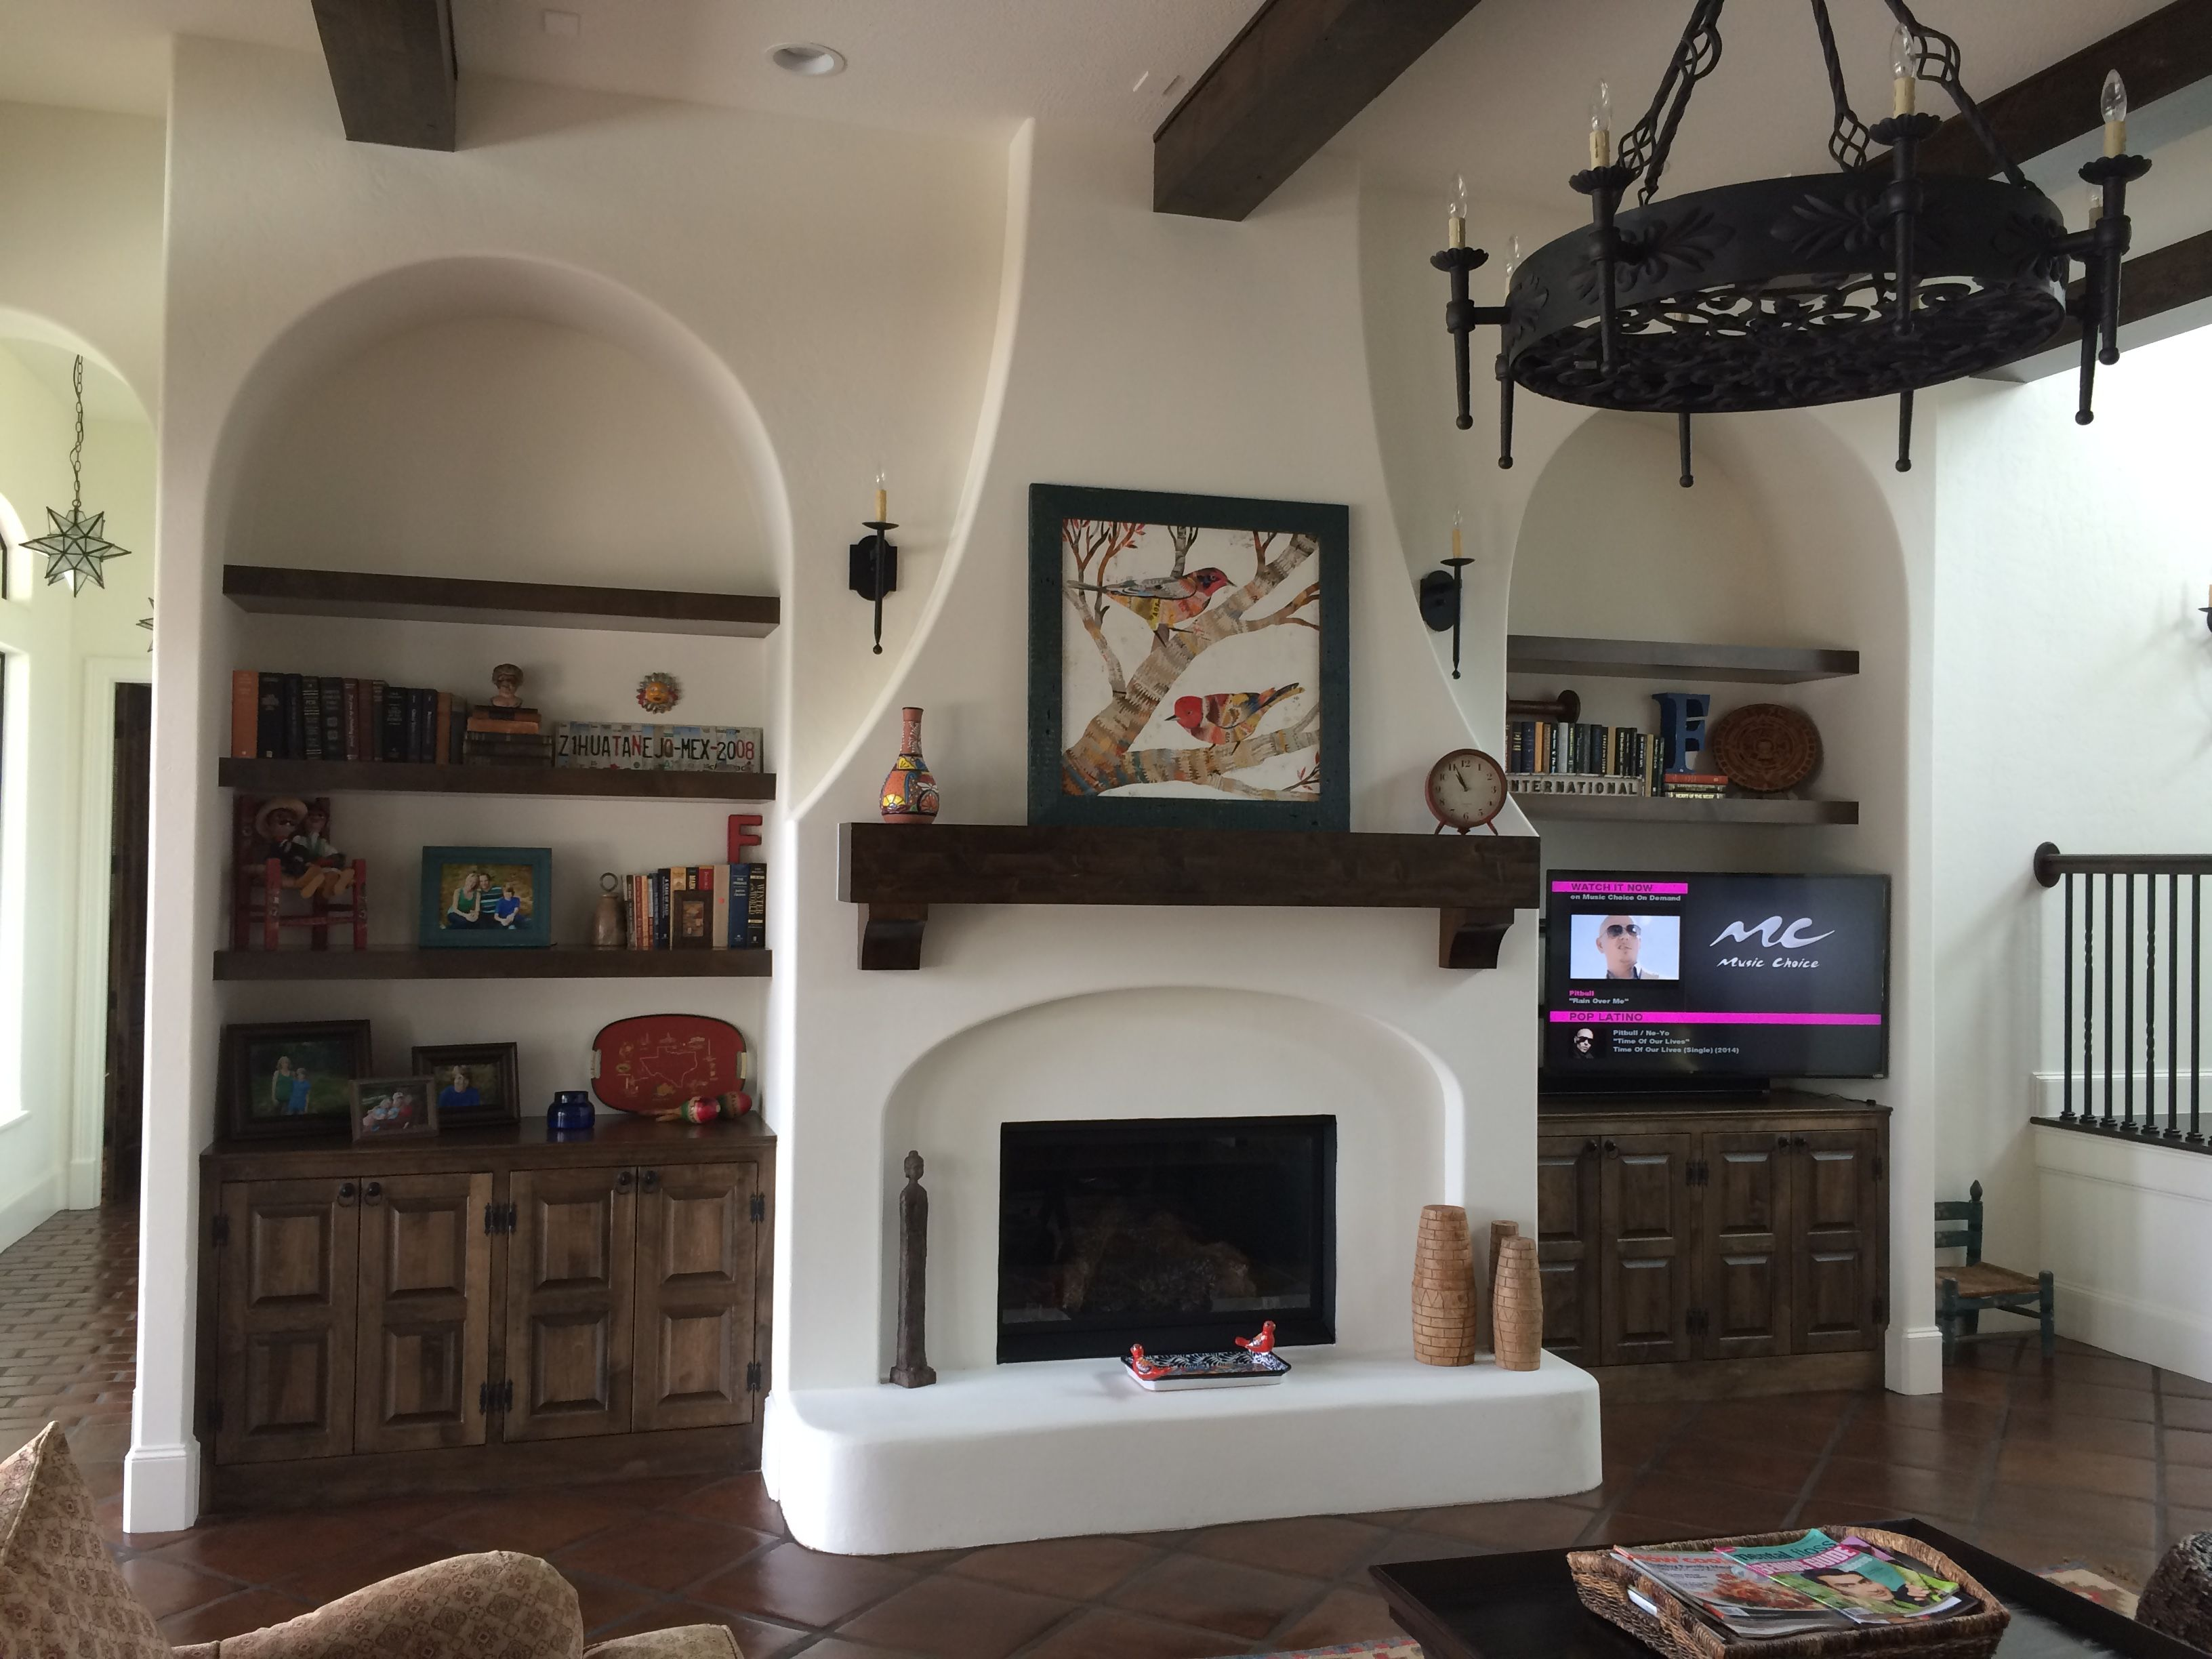 Image Result For Spanish Style Large White Stucco Fireplace Image Result For Spanish Style Large White Stucco